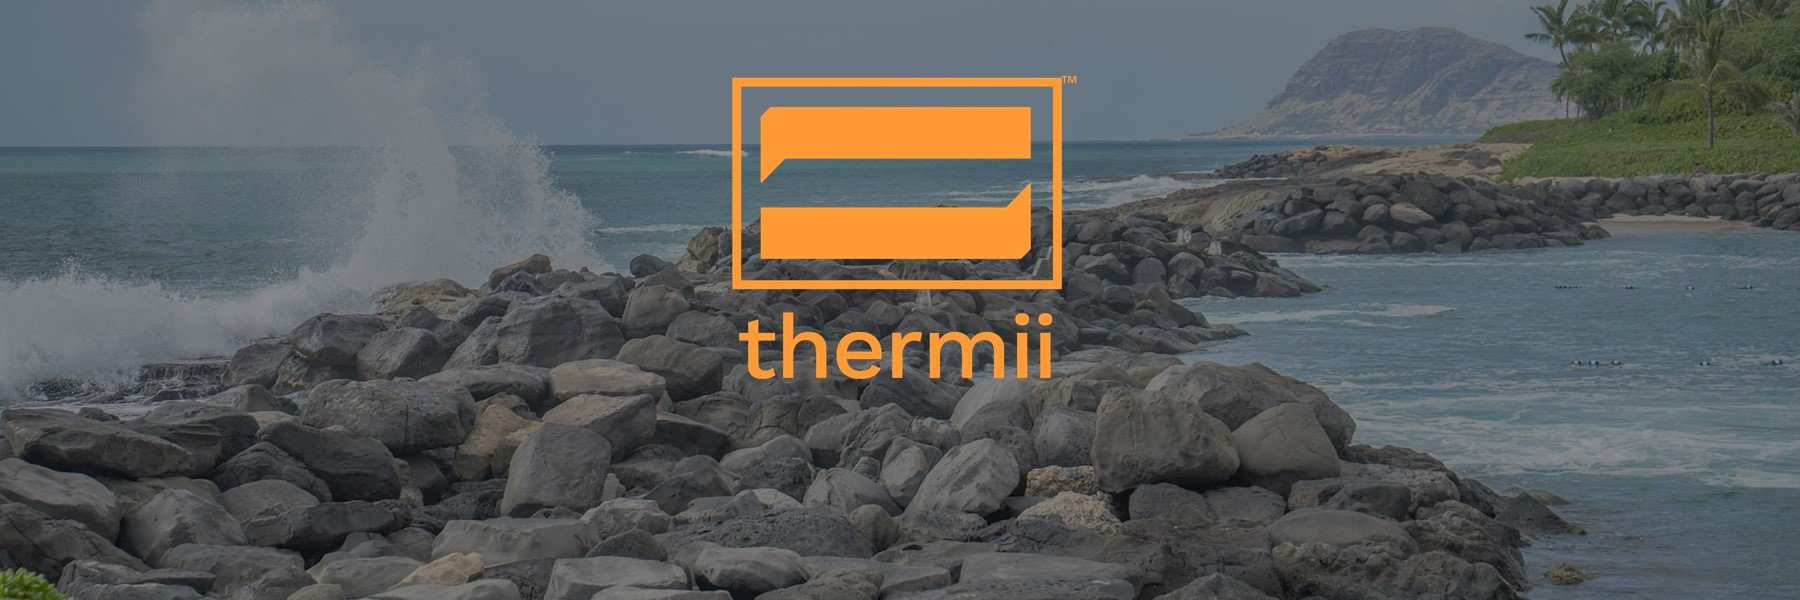 Thermii logo over scenic picture of Hawaii.